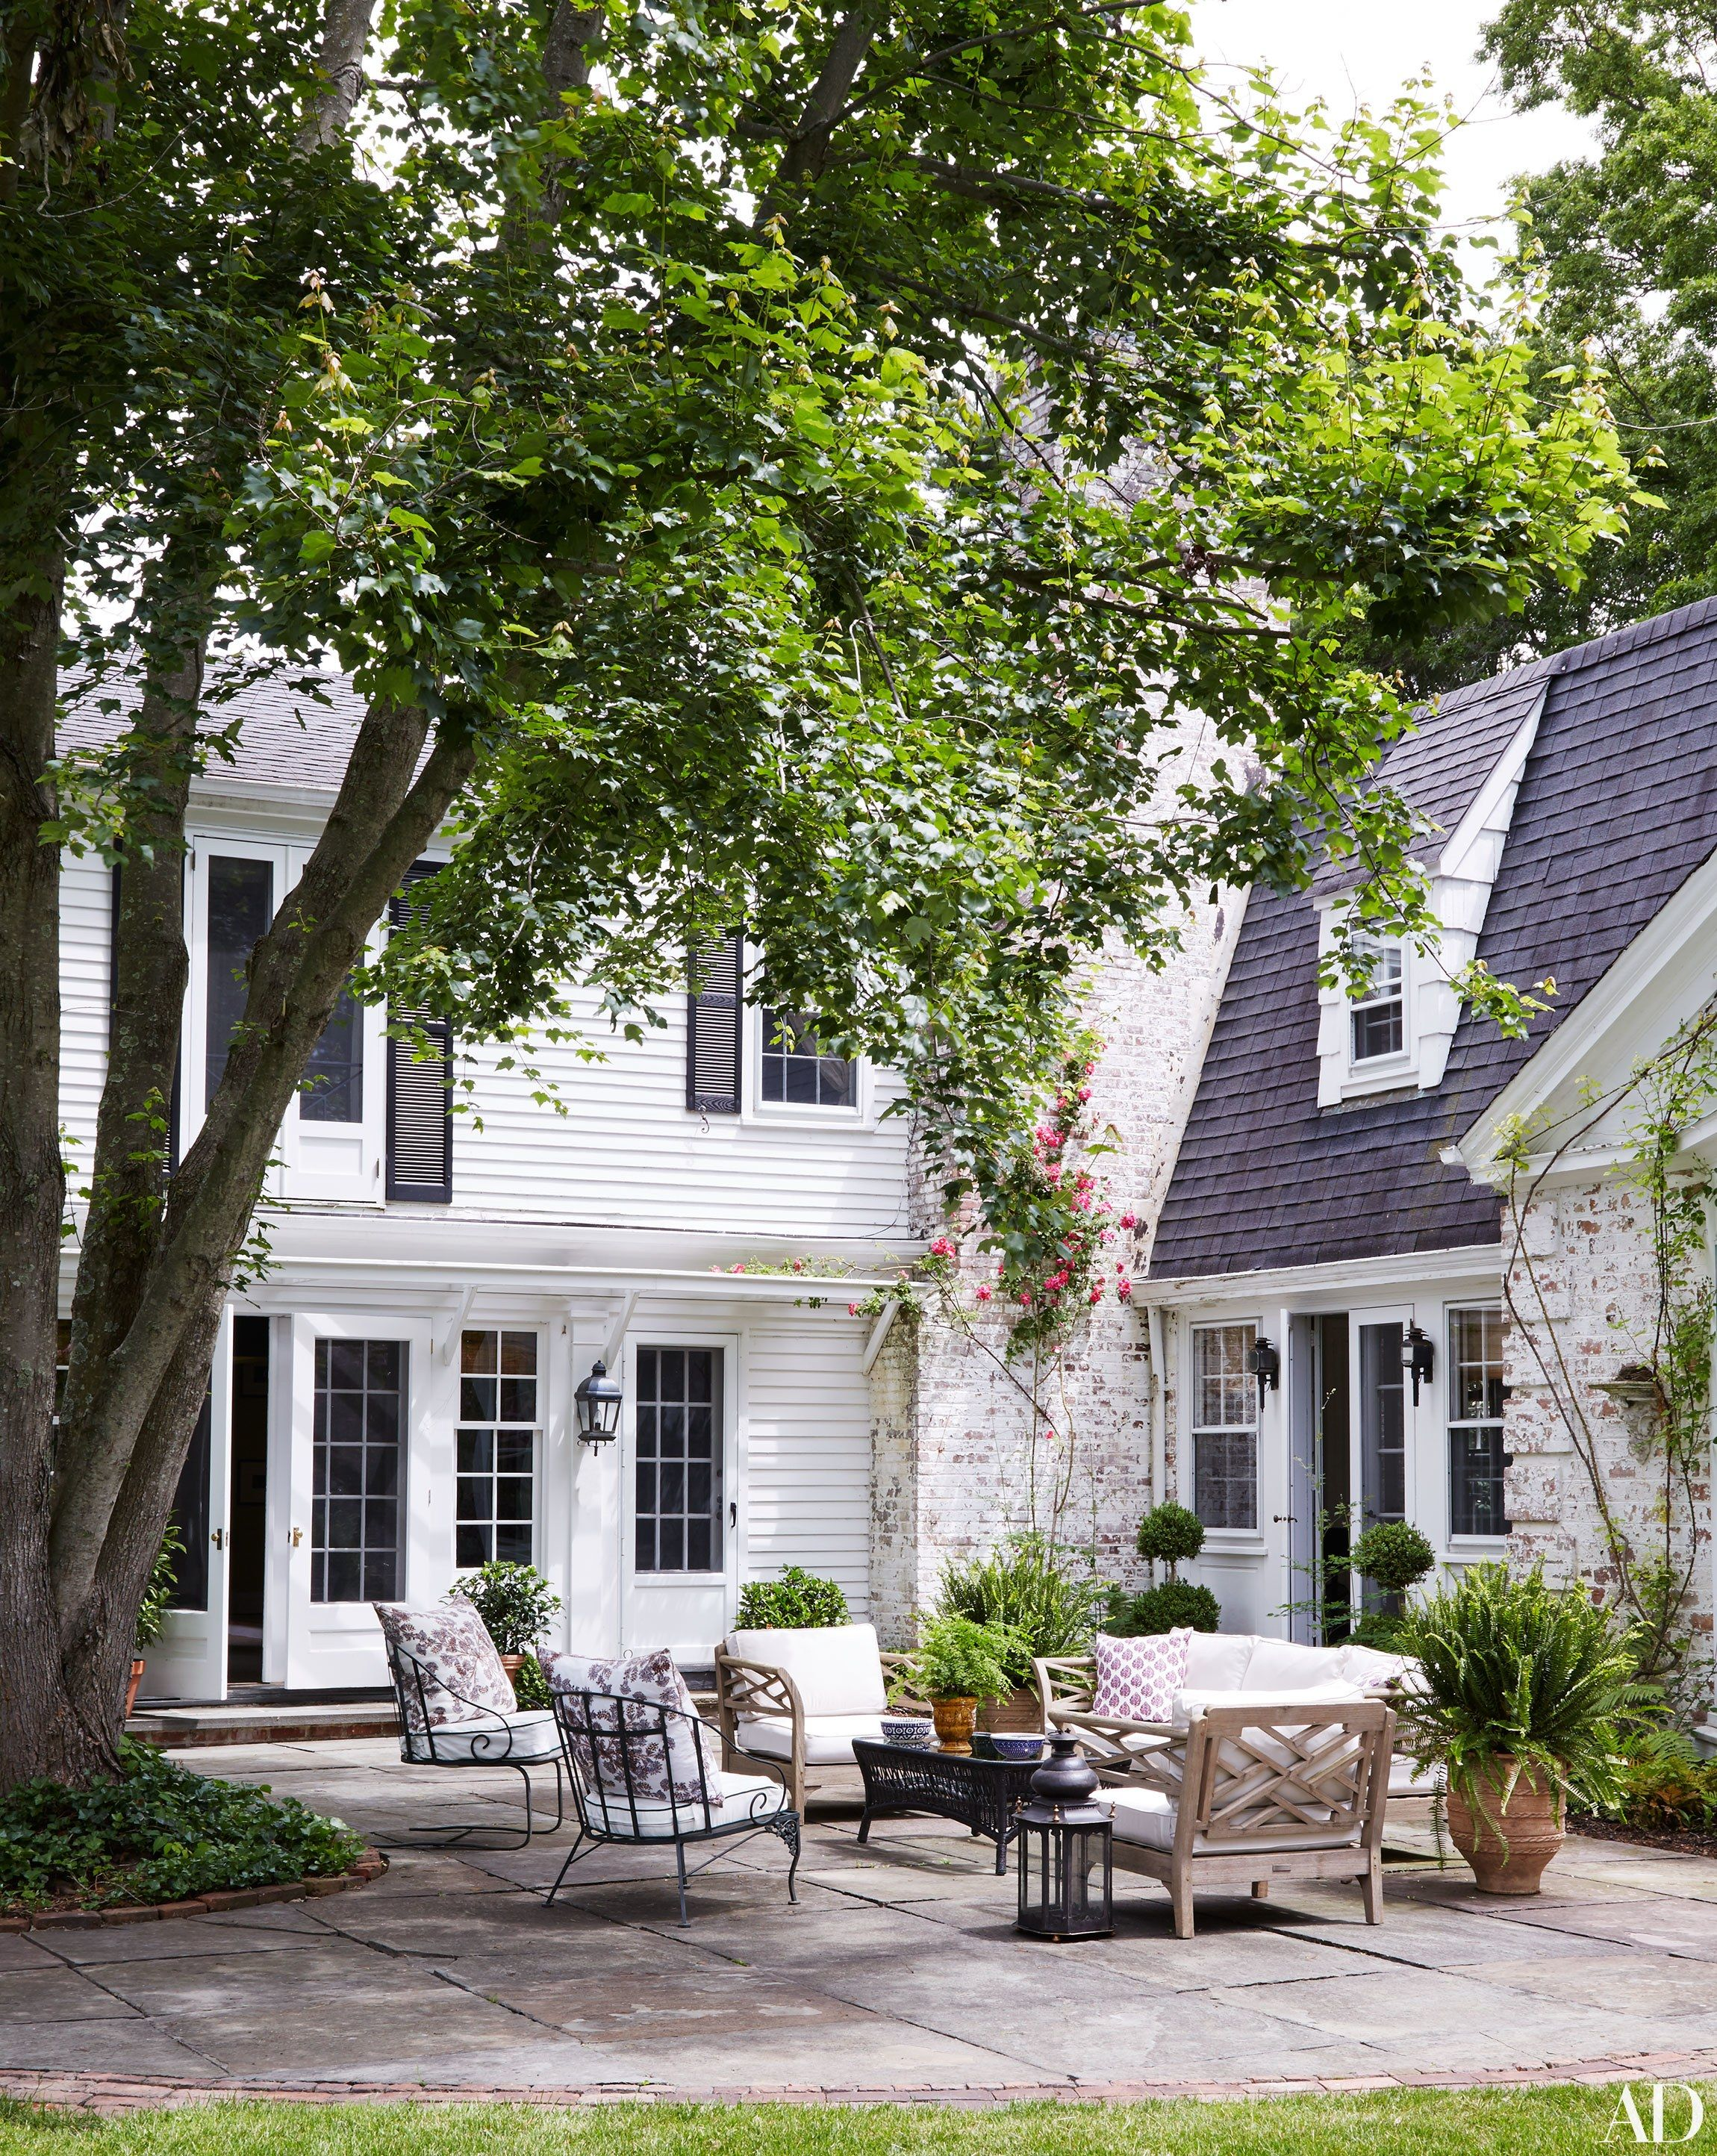 Daniel Sachs And Kevin Lindores Reimagine A House On Long Island S North Shore Long Island House Shore House House Exterior Shore house backyard ideas